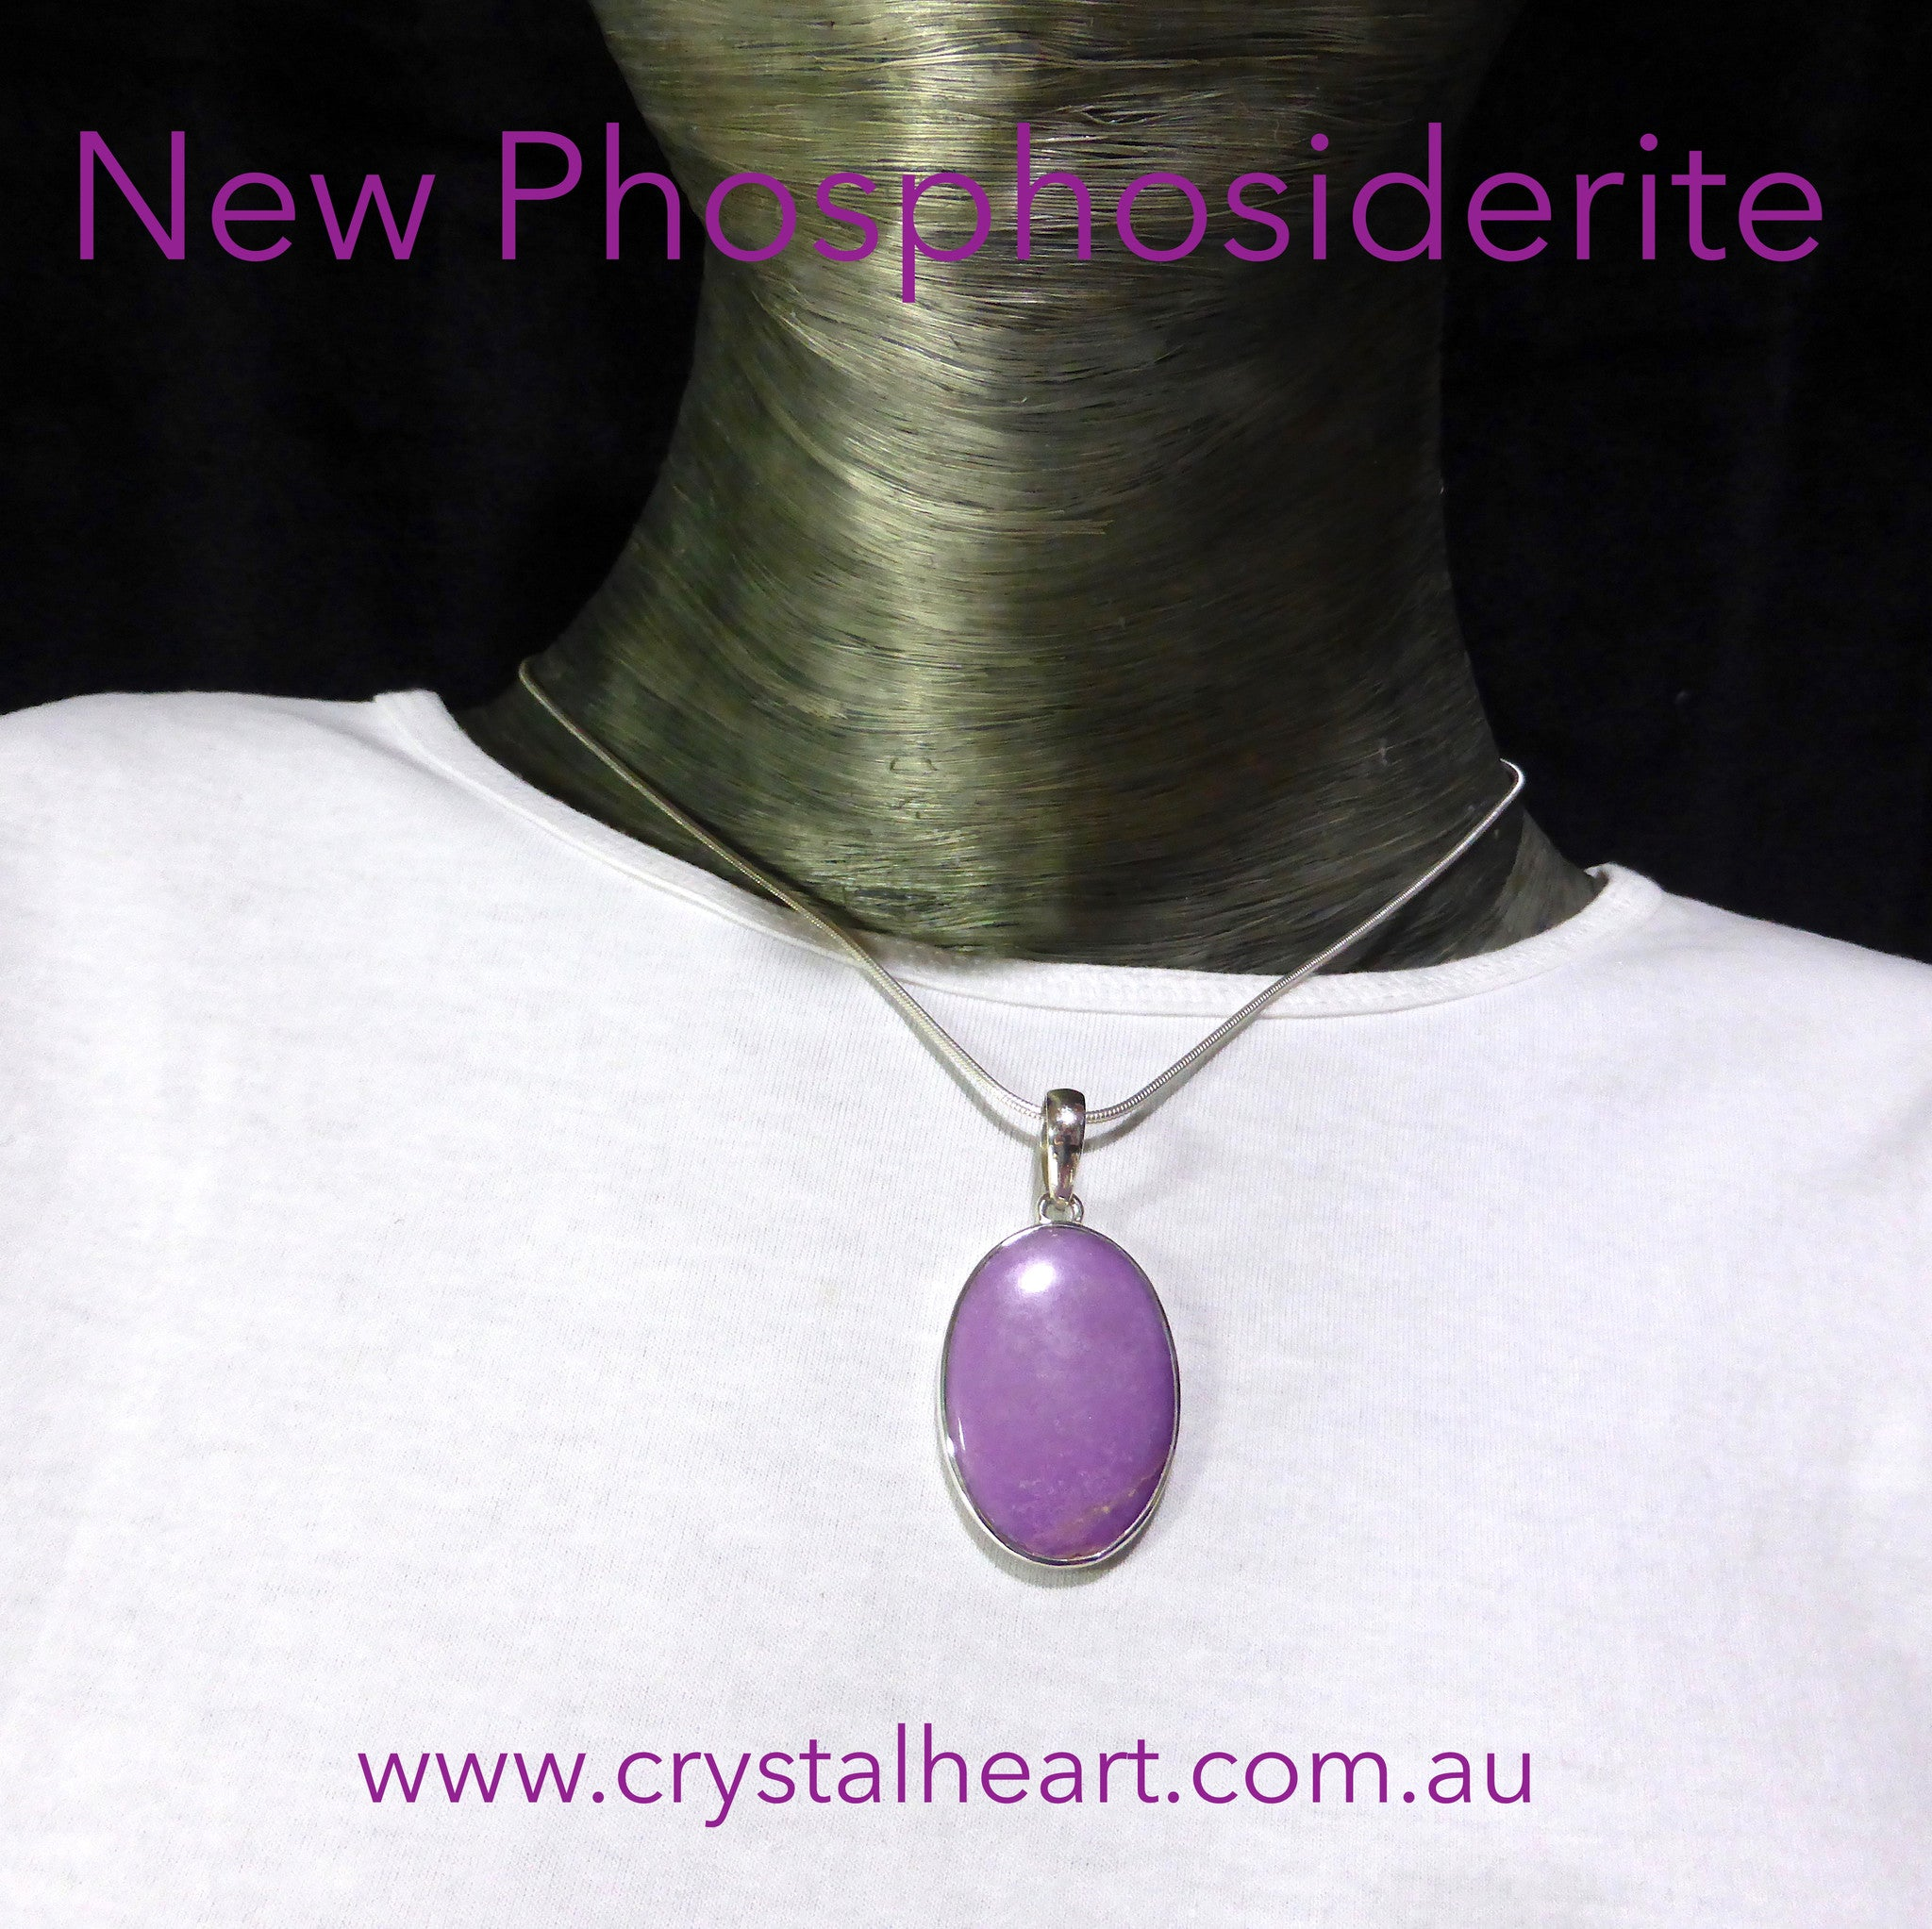 Phosphosiderite Pendant | Oval Cabochon | 925 Sterling Silver | Iron Phosphate | Higher Heart & 3rd Eye centre | Crystal Heart Melbourne Australia since 1986